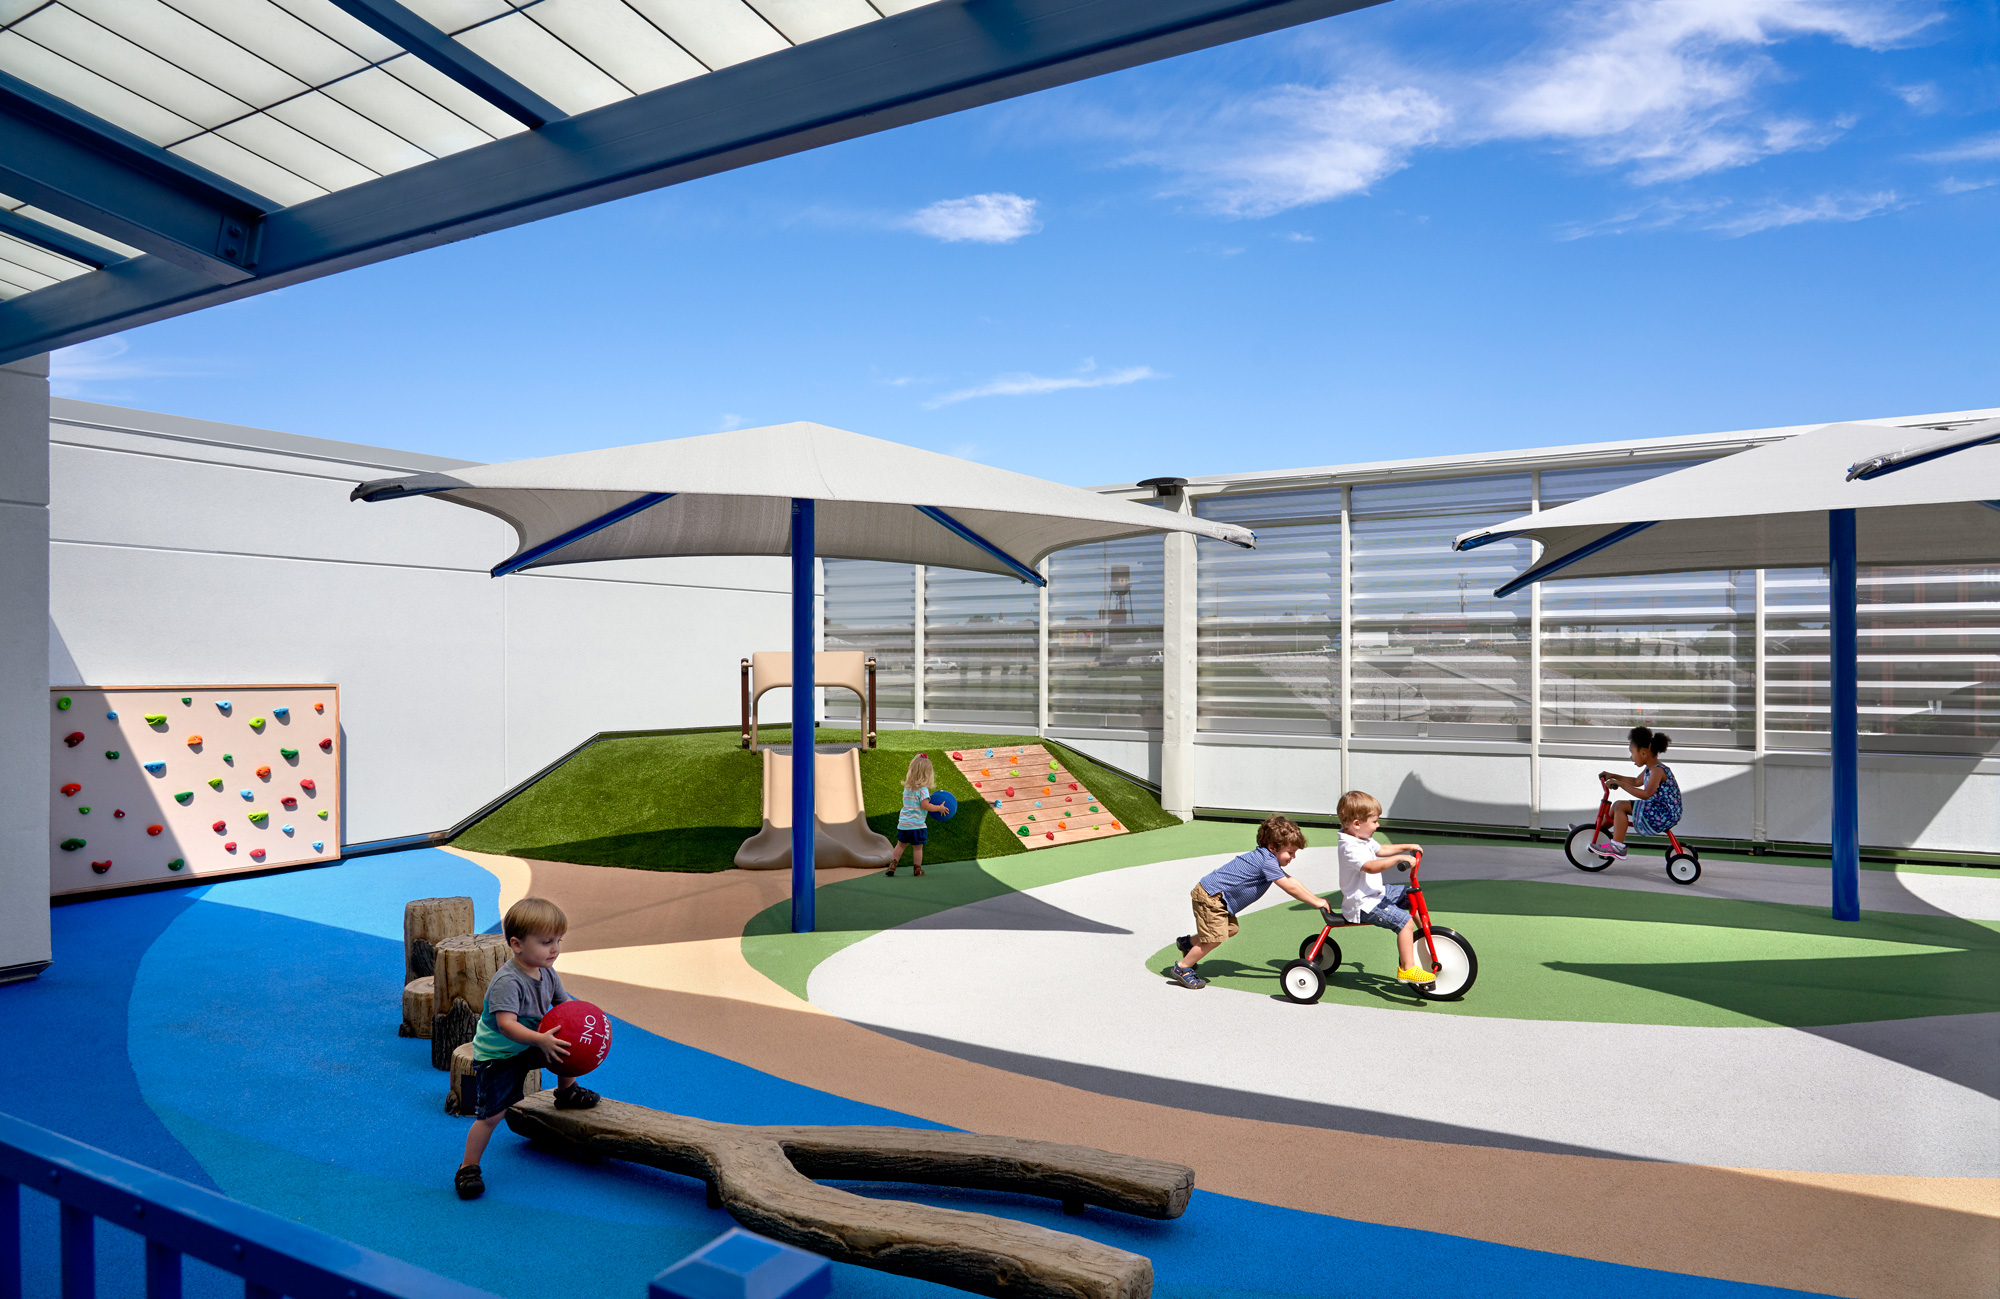 Architectural-Photograph-of-HCA-Childcare-Center-in-Nashville-Tennessee-by-Architectural-Photographer-Nick-McGinn-4.web.jpg